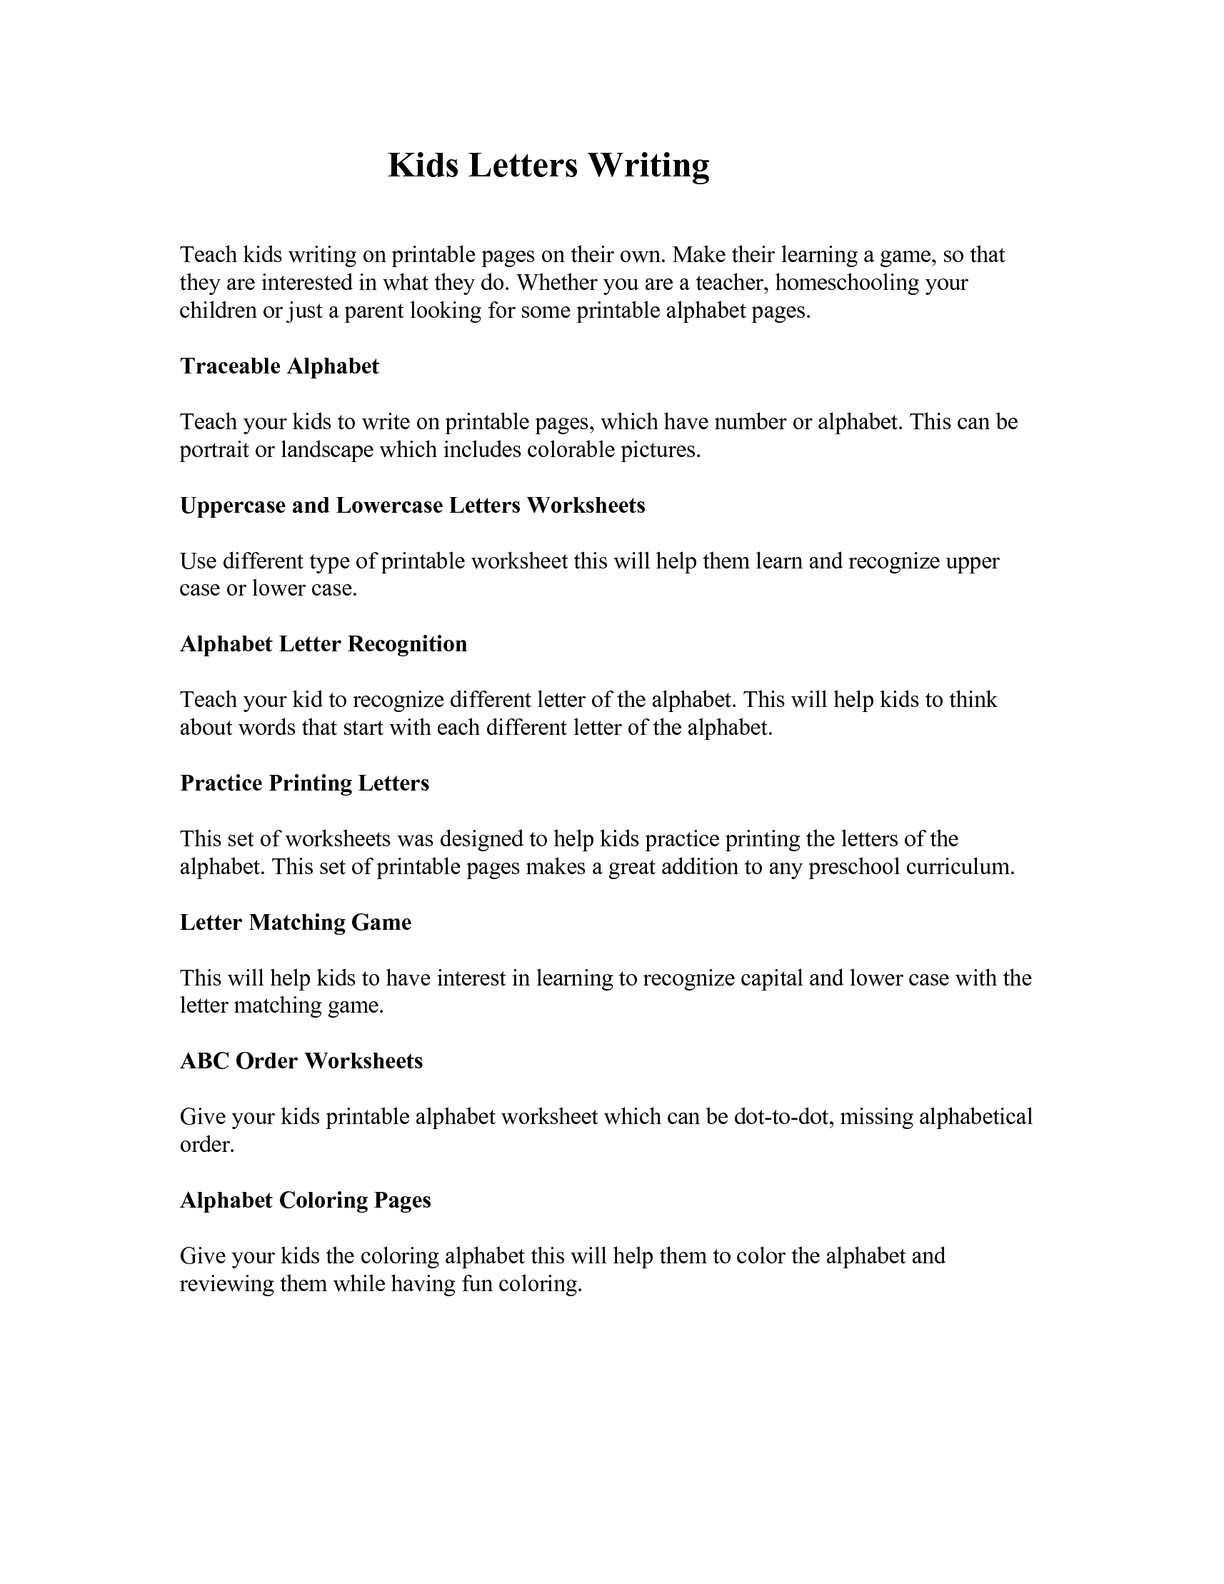 Printable Abc Order Worksheets Calameo Kids Letter Writing